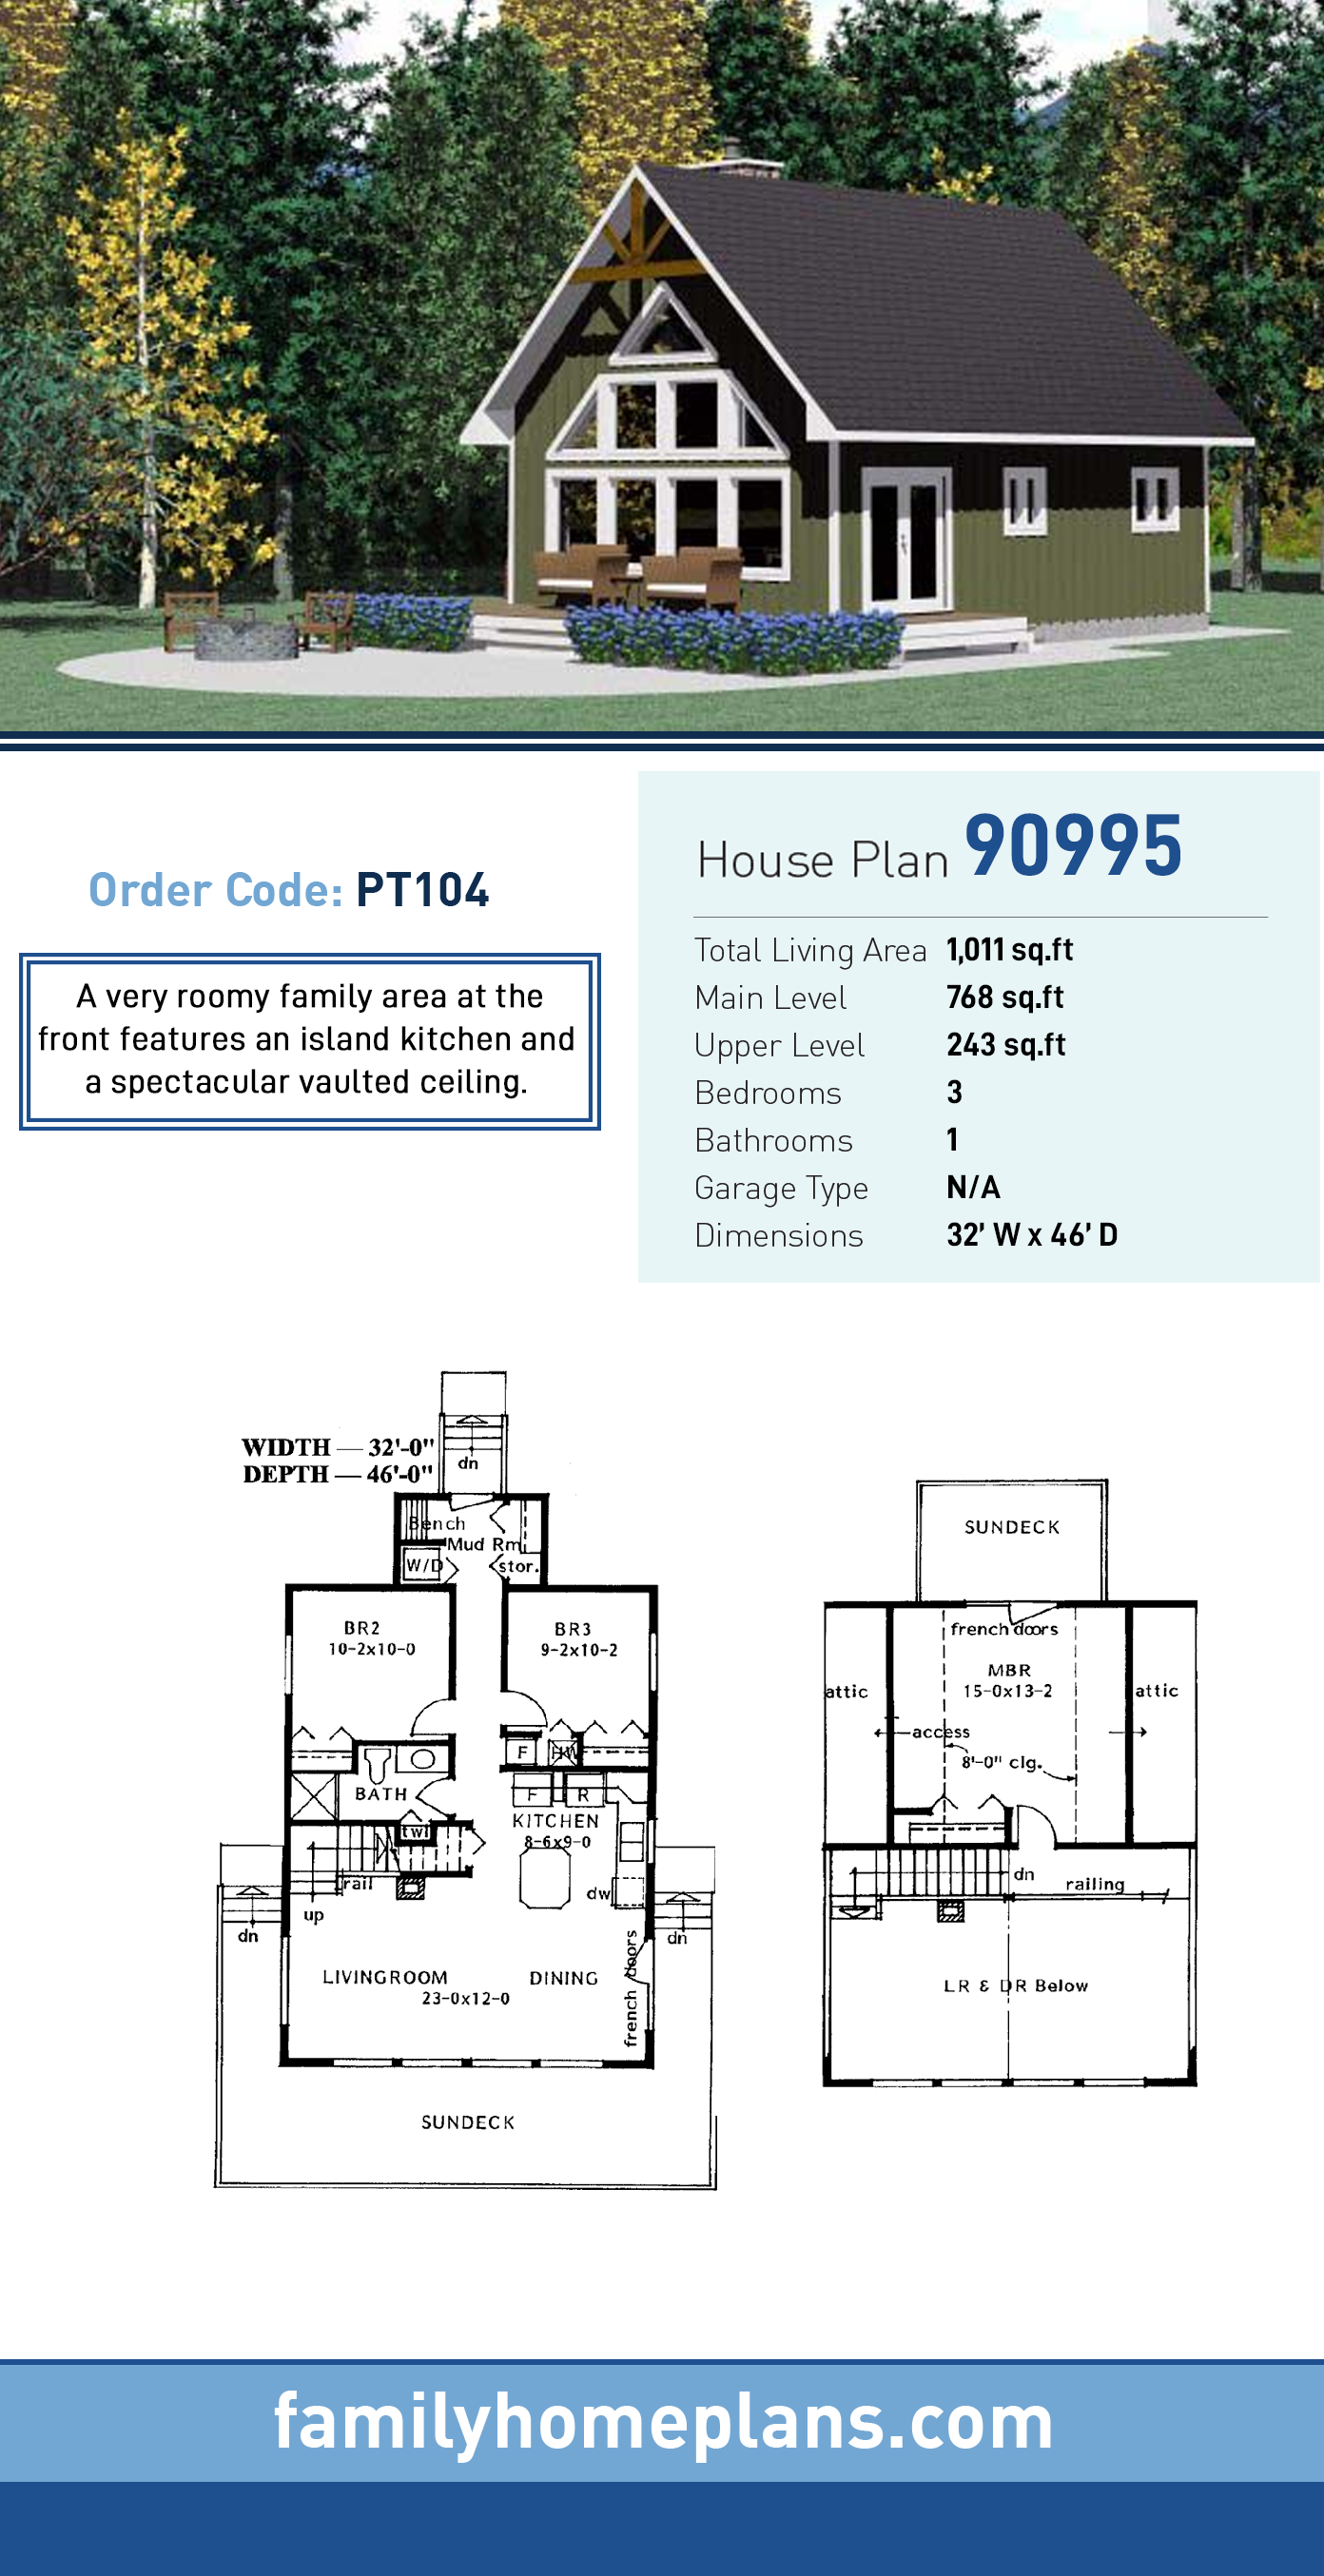 Cottage Style House Plan 90995 With 3 Bed 1 Bath Cottage House Plans Cottage Style House Plans House Plan With Loft